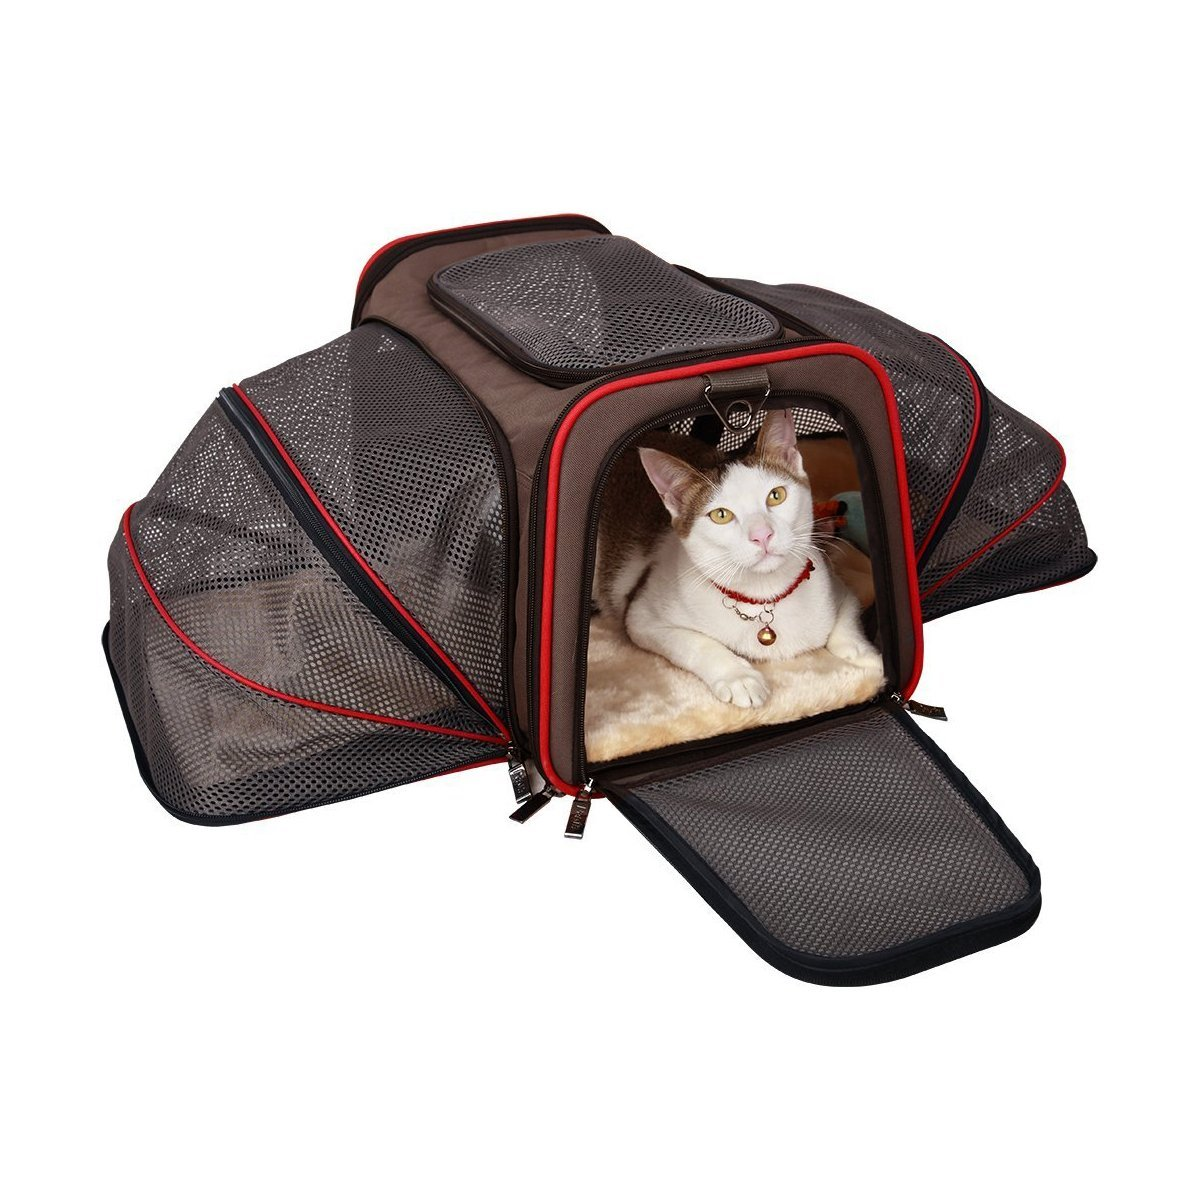 Aleko Heavy Duty Expandable Pet Carrier for Travel - Small - Brown